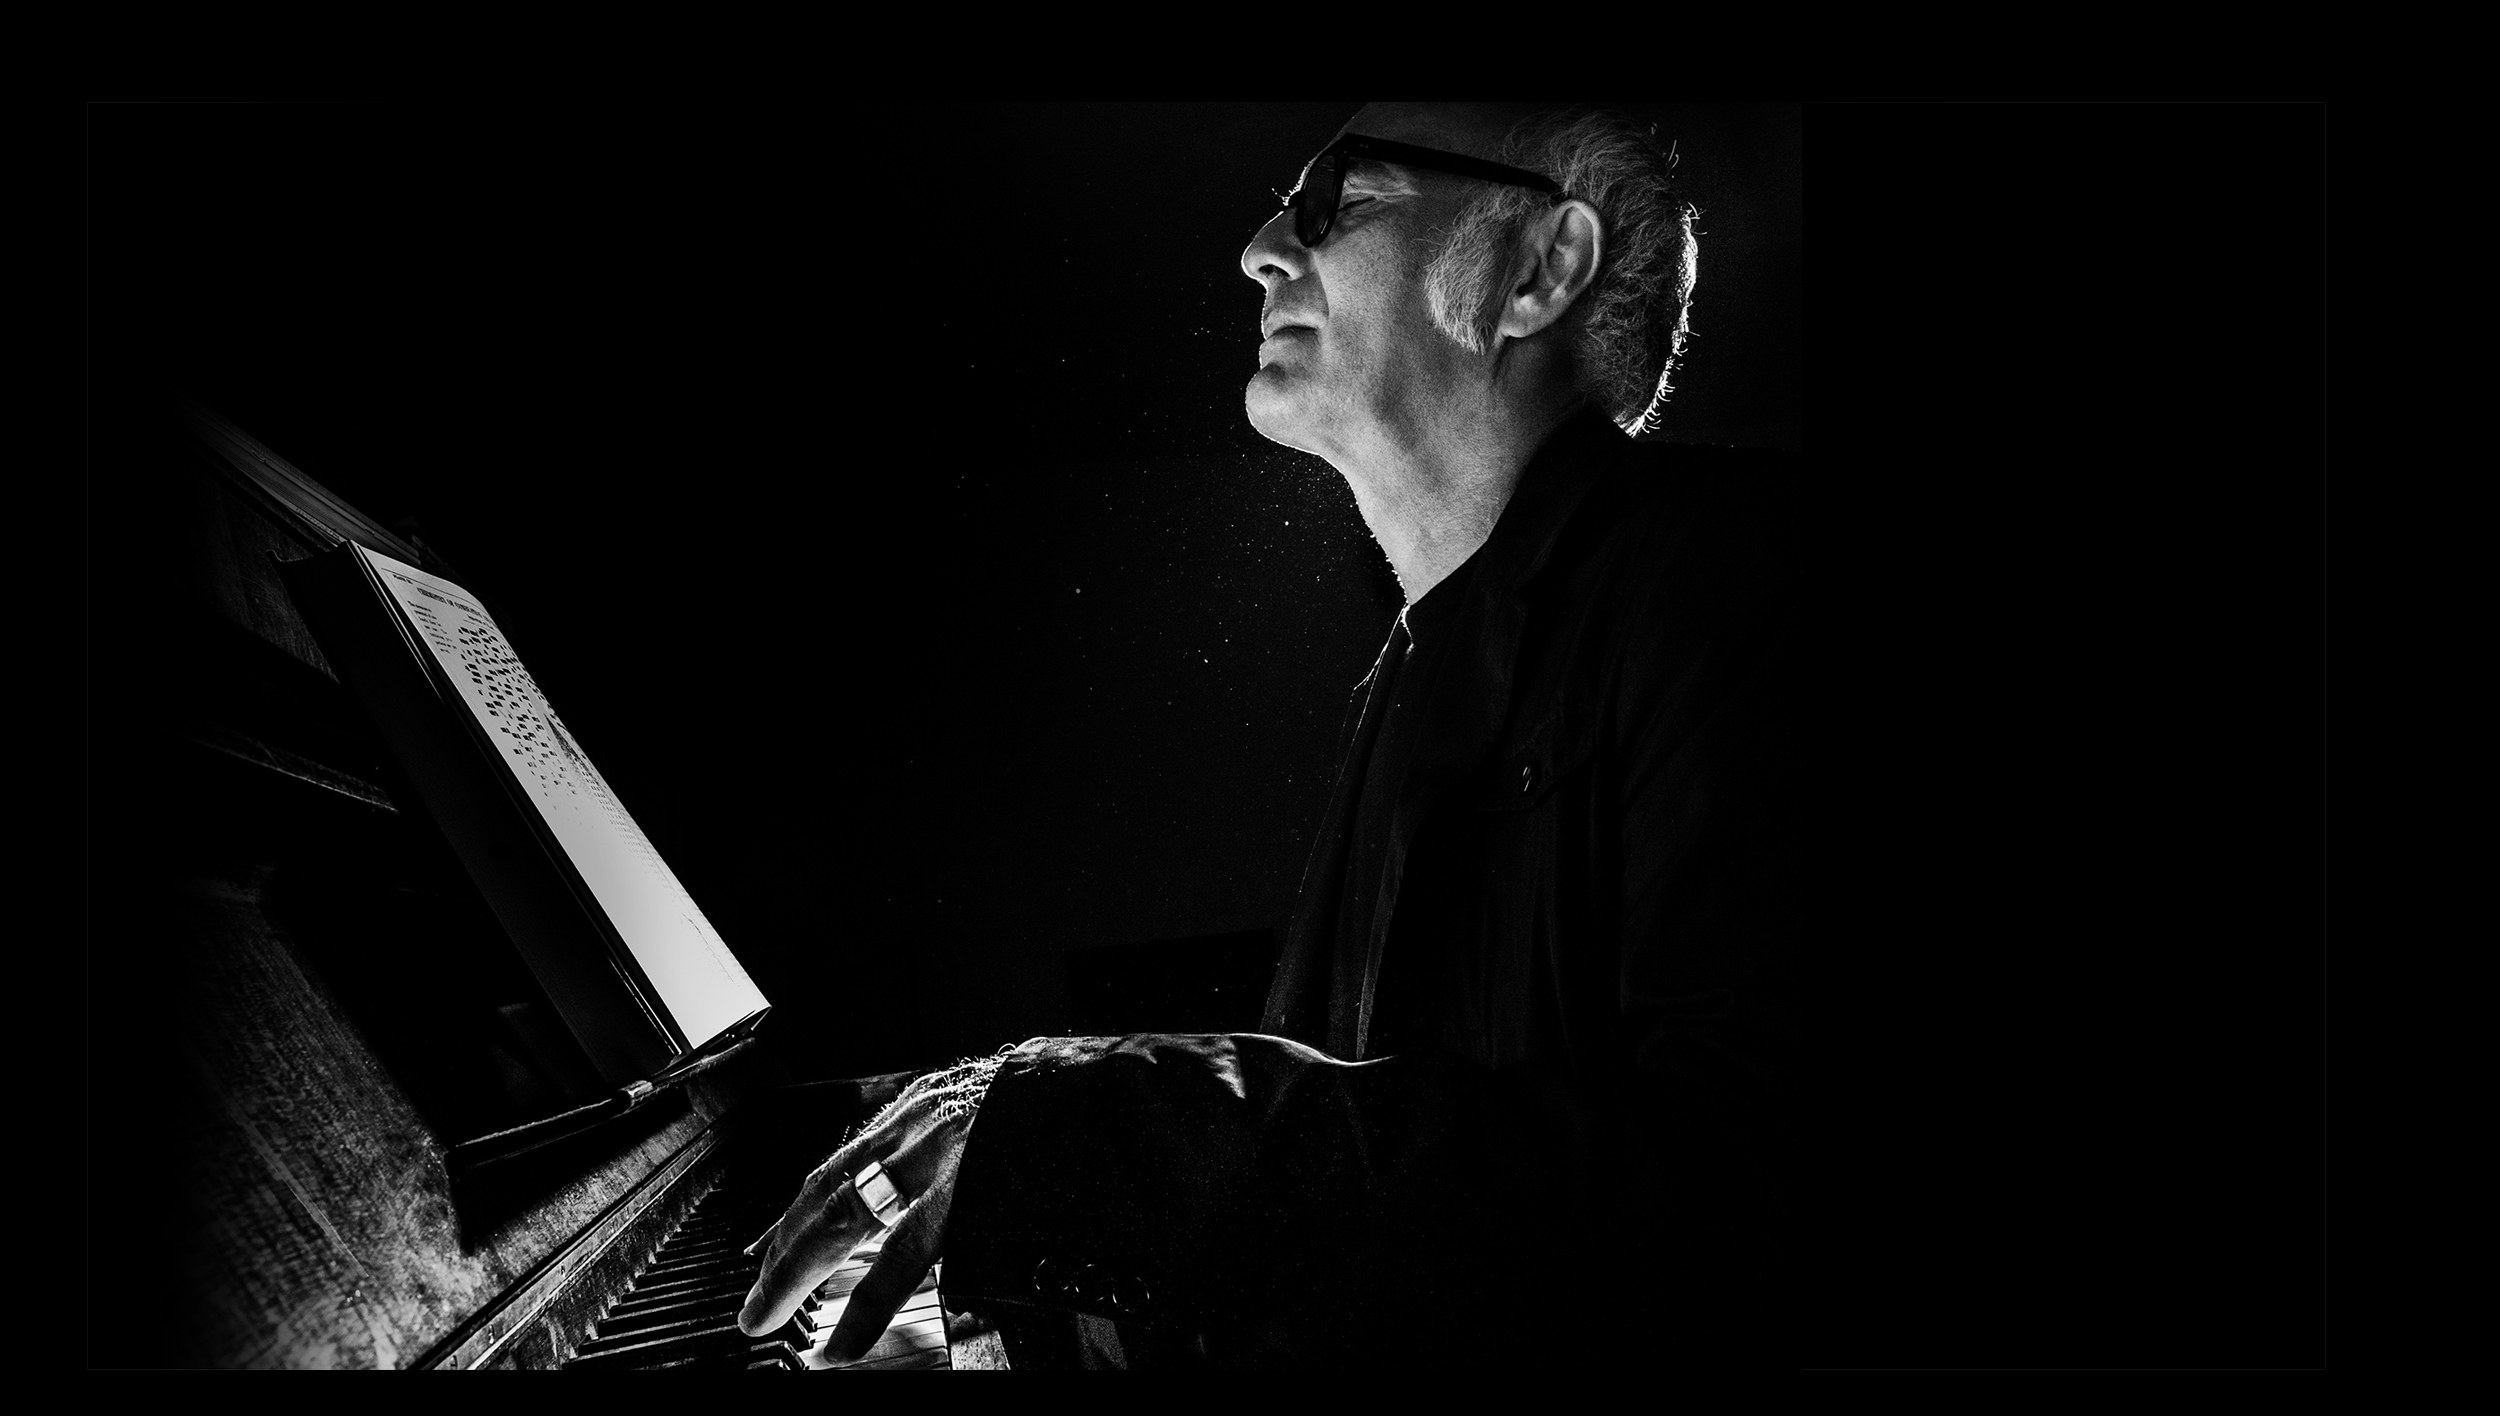 http://www.steinway.com/news/features/a-new-vision-ludovico-einaudi